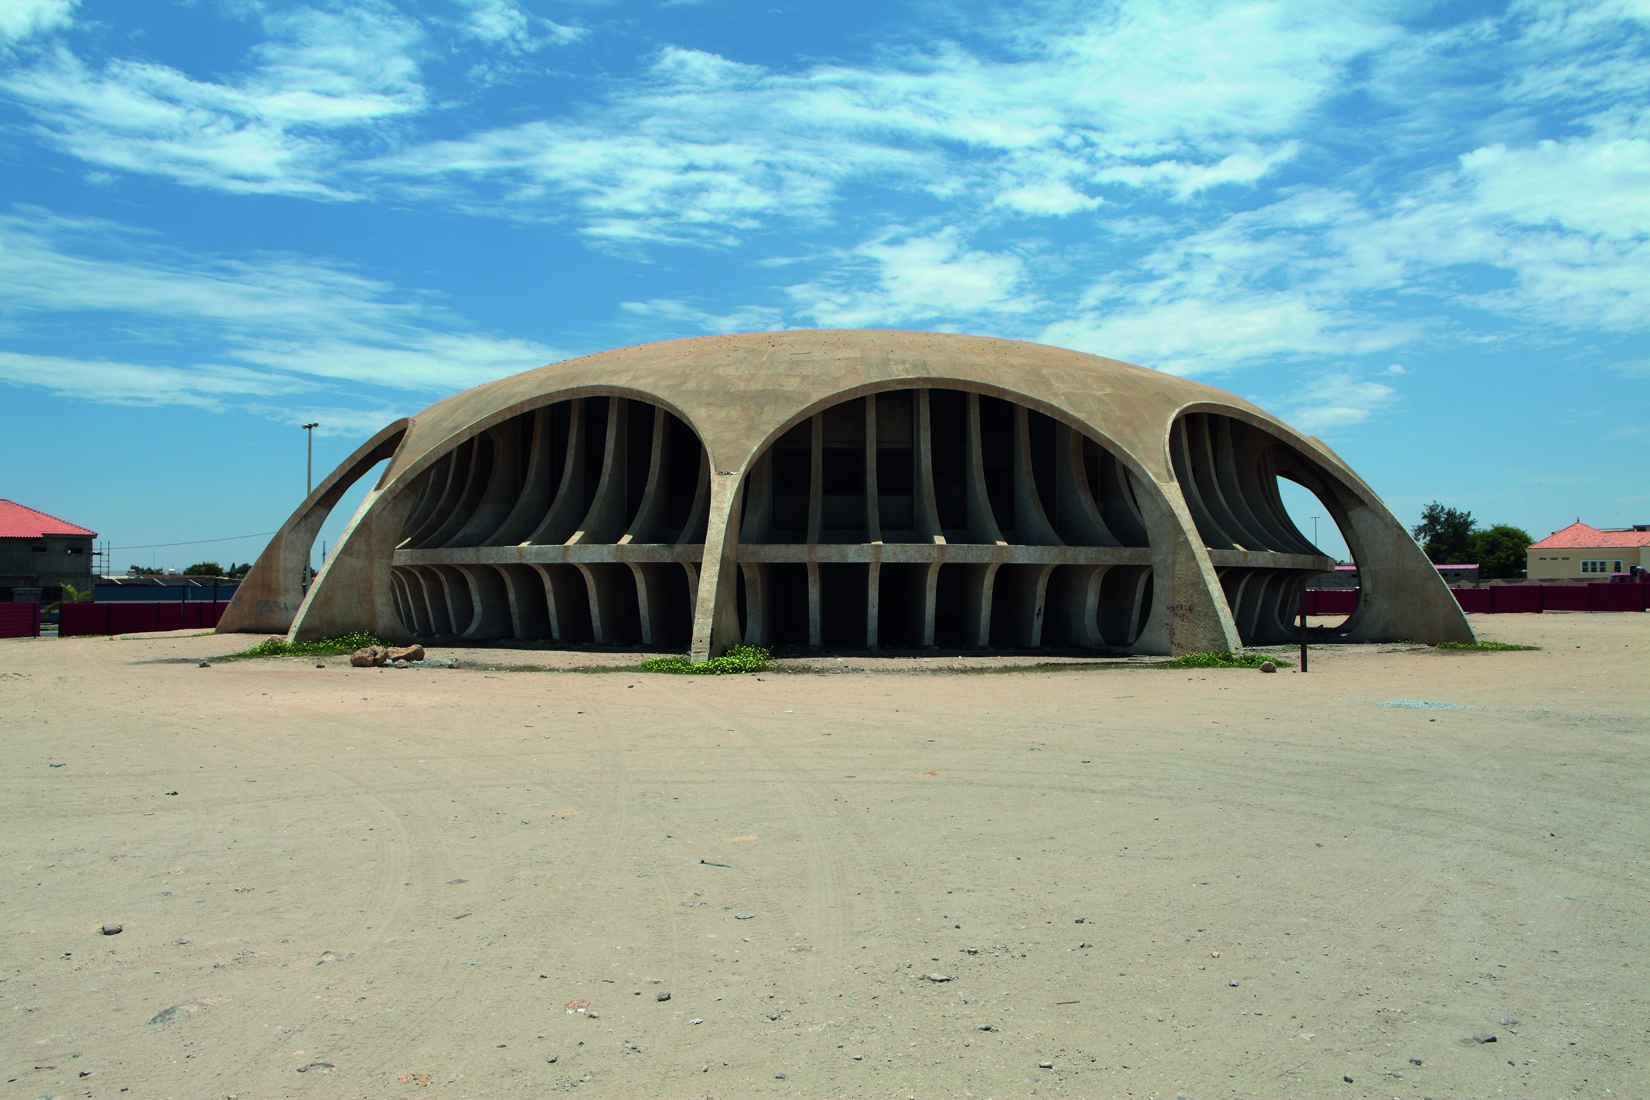 Designed by Botelho Vasconcelos of Atelier Boper, Cine Estudio in Namibe, Provincia Namibe, was never completed. While it currently lies in poor condition, a rehabilitation project is underway. Photography: Walter Fernandes/Goethe-Institut Angola